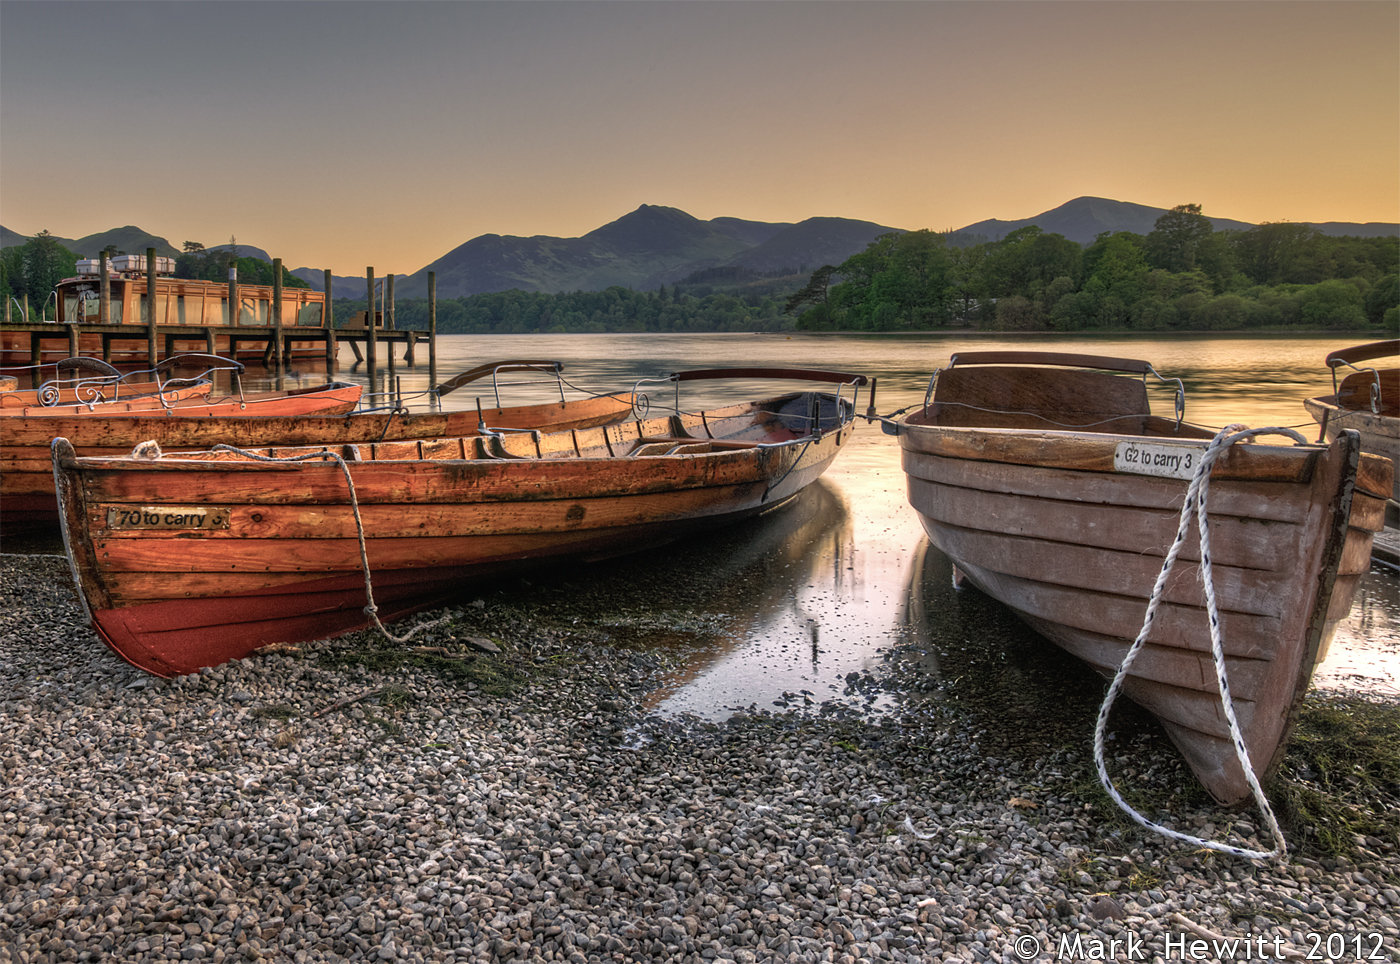 The Boats At Derwentwater